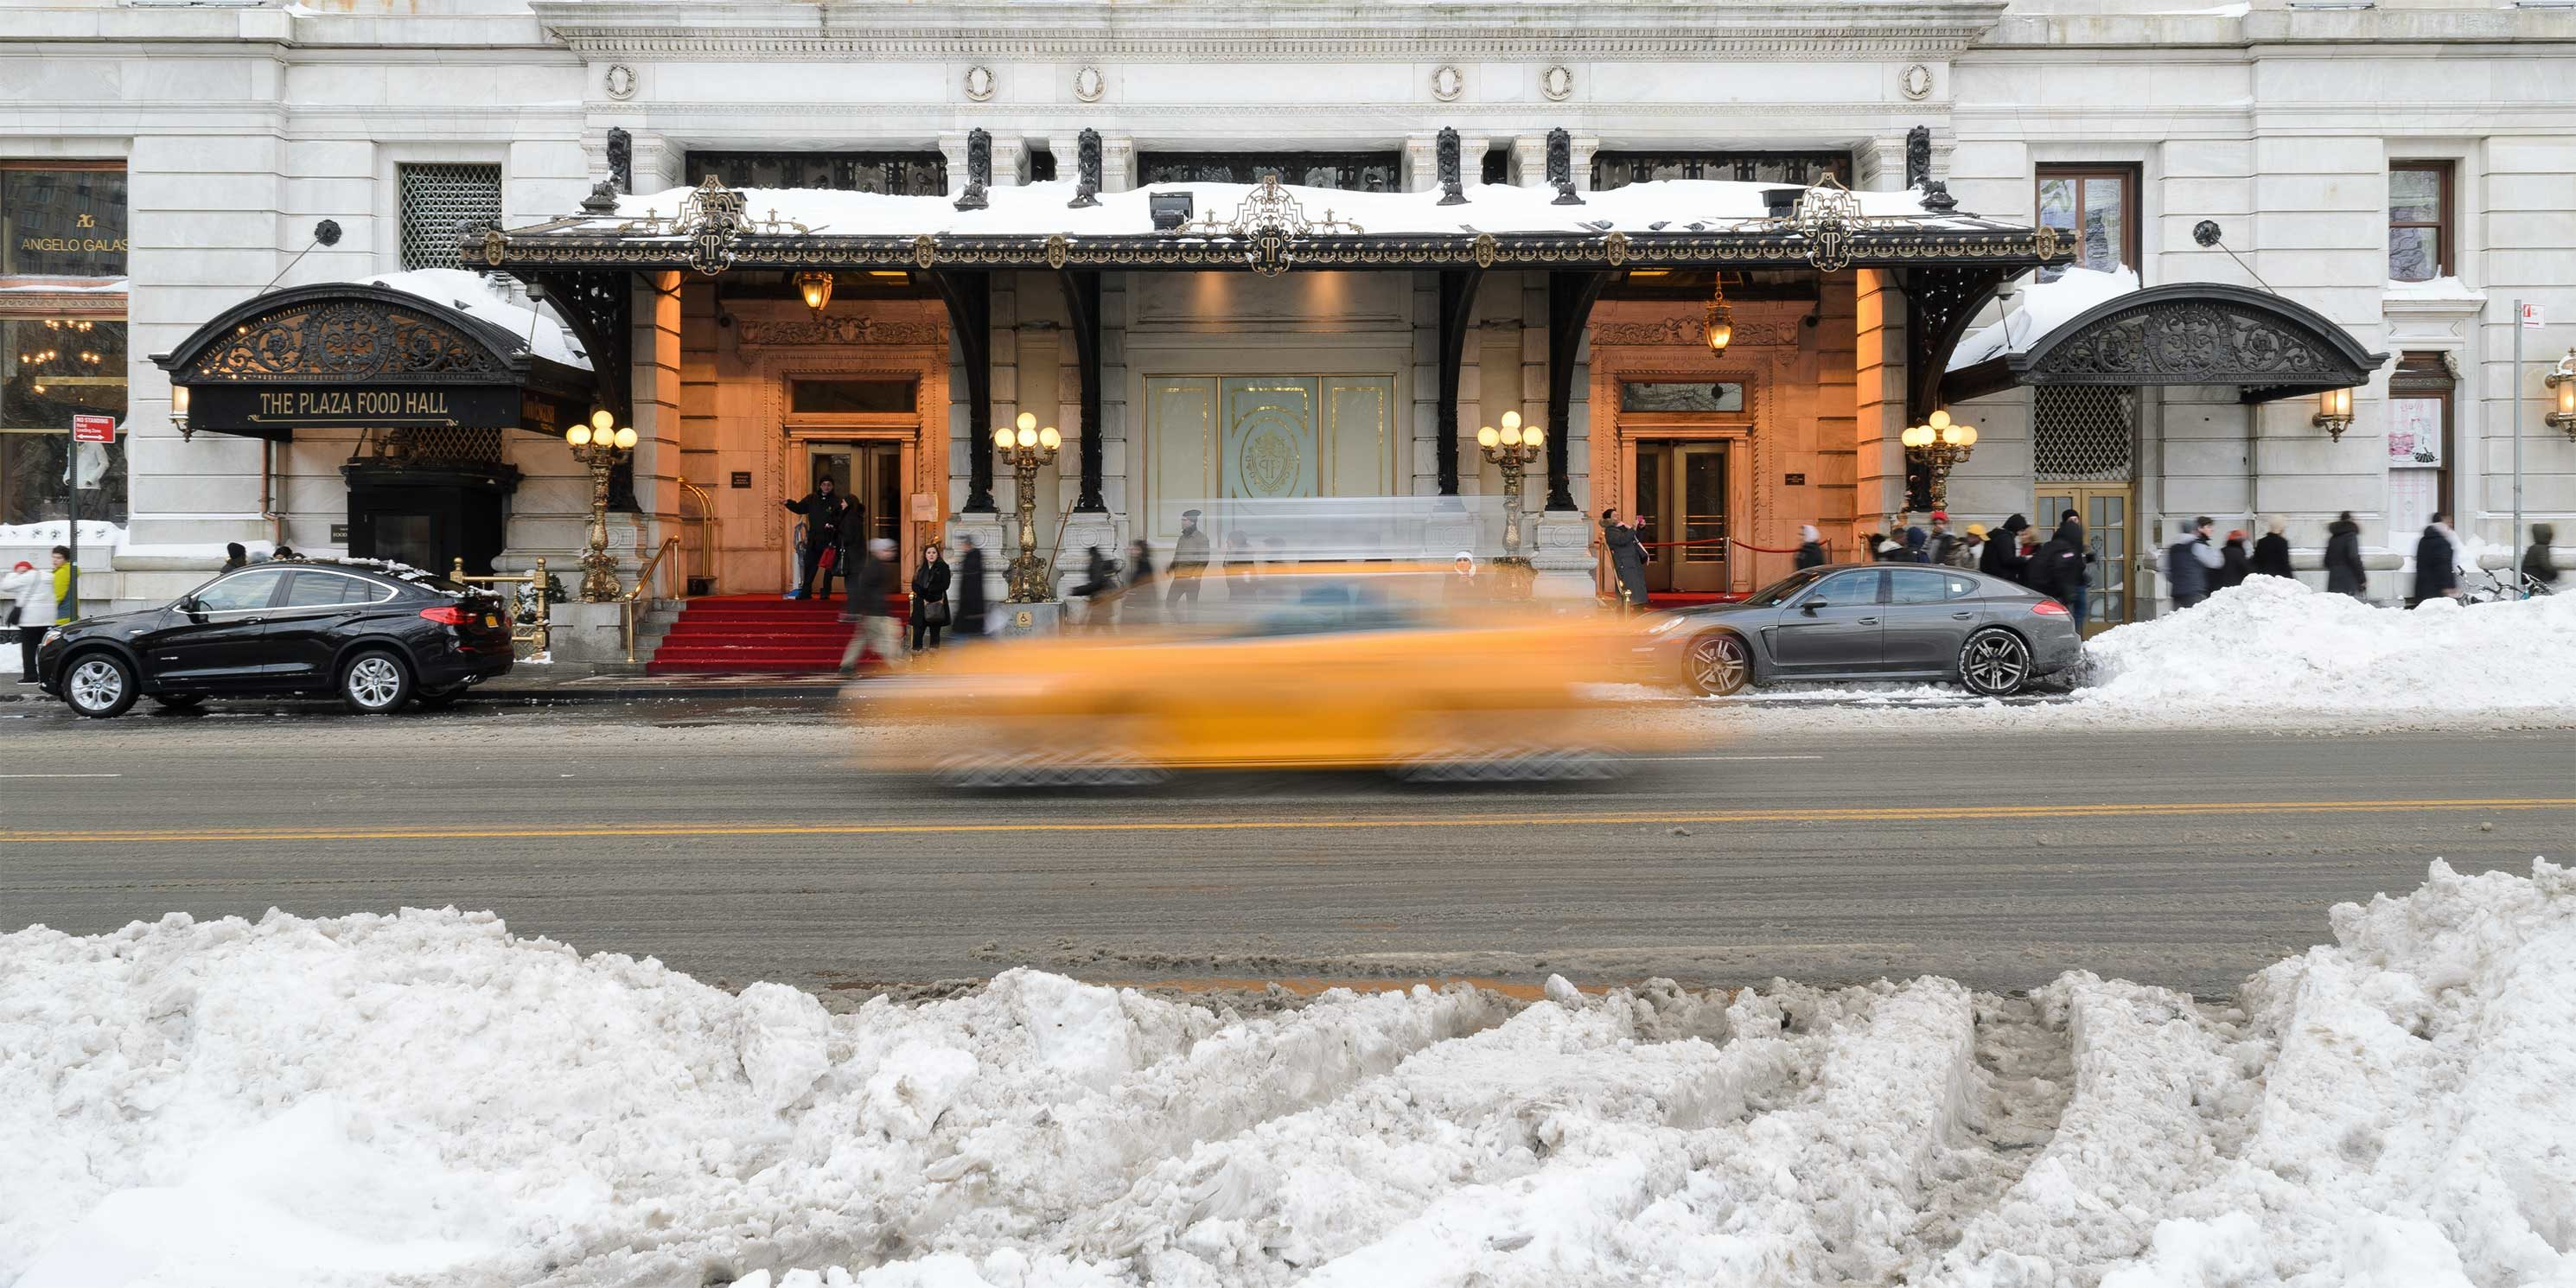 exterior of the Plaza Hotel with snow